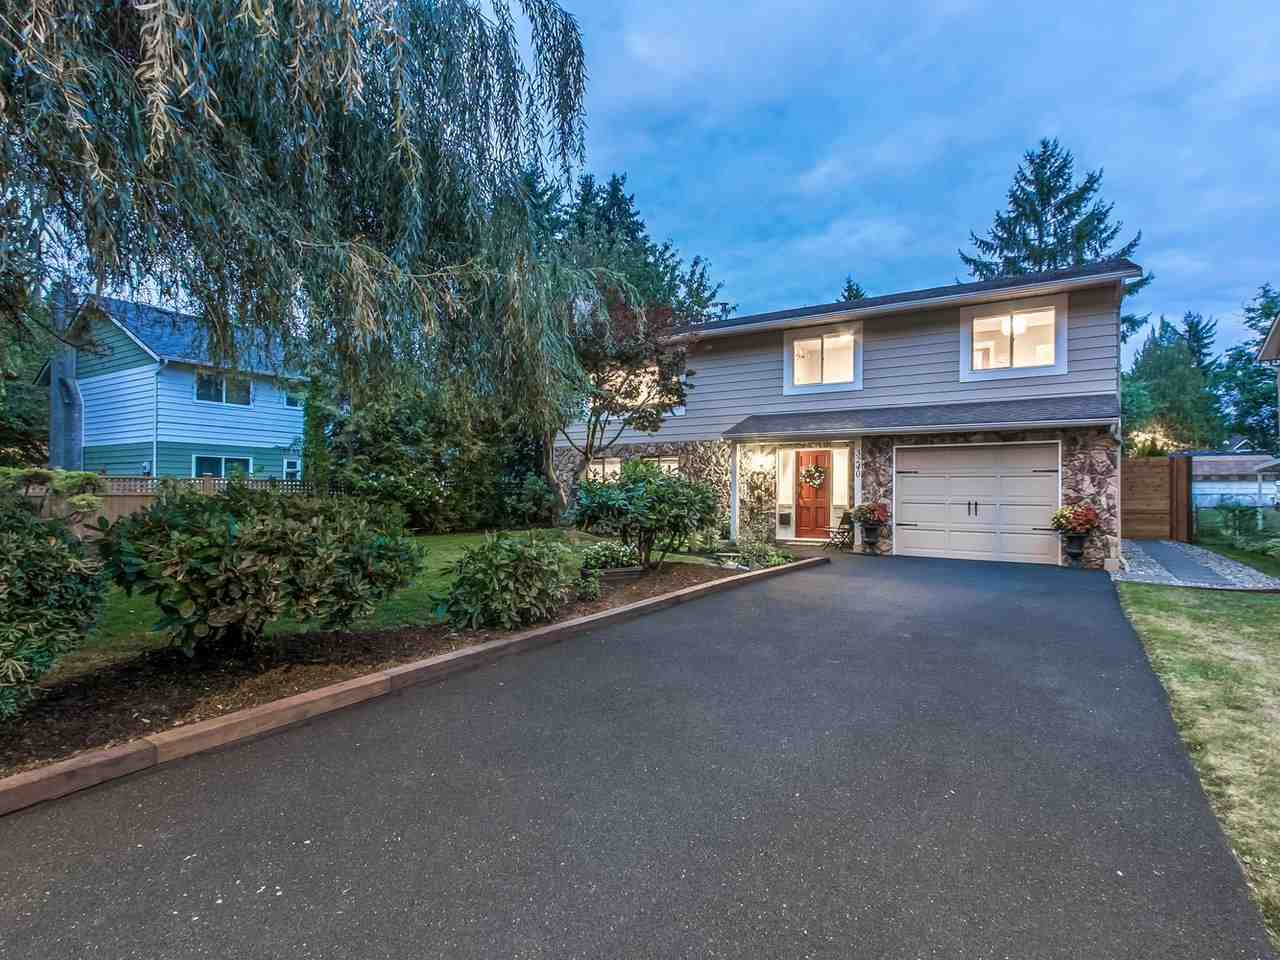 Main Photo: 3240 LANCASTER Street in Port Coquitlam: Central Pt Coquitlam House for sale : MLS®# R2209156